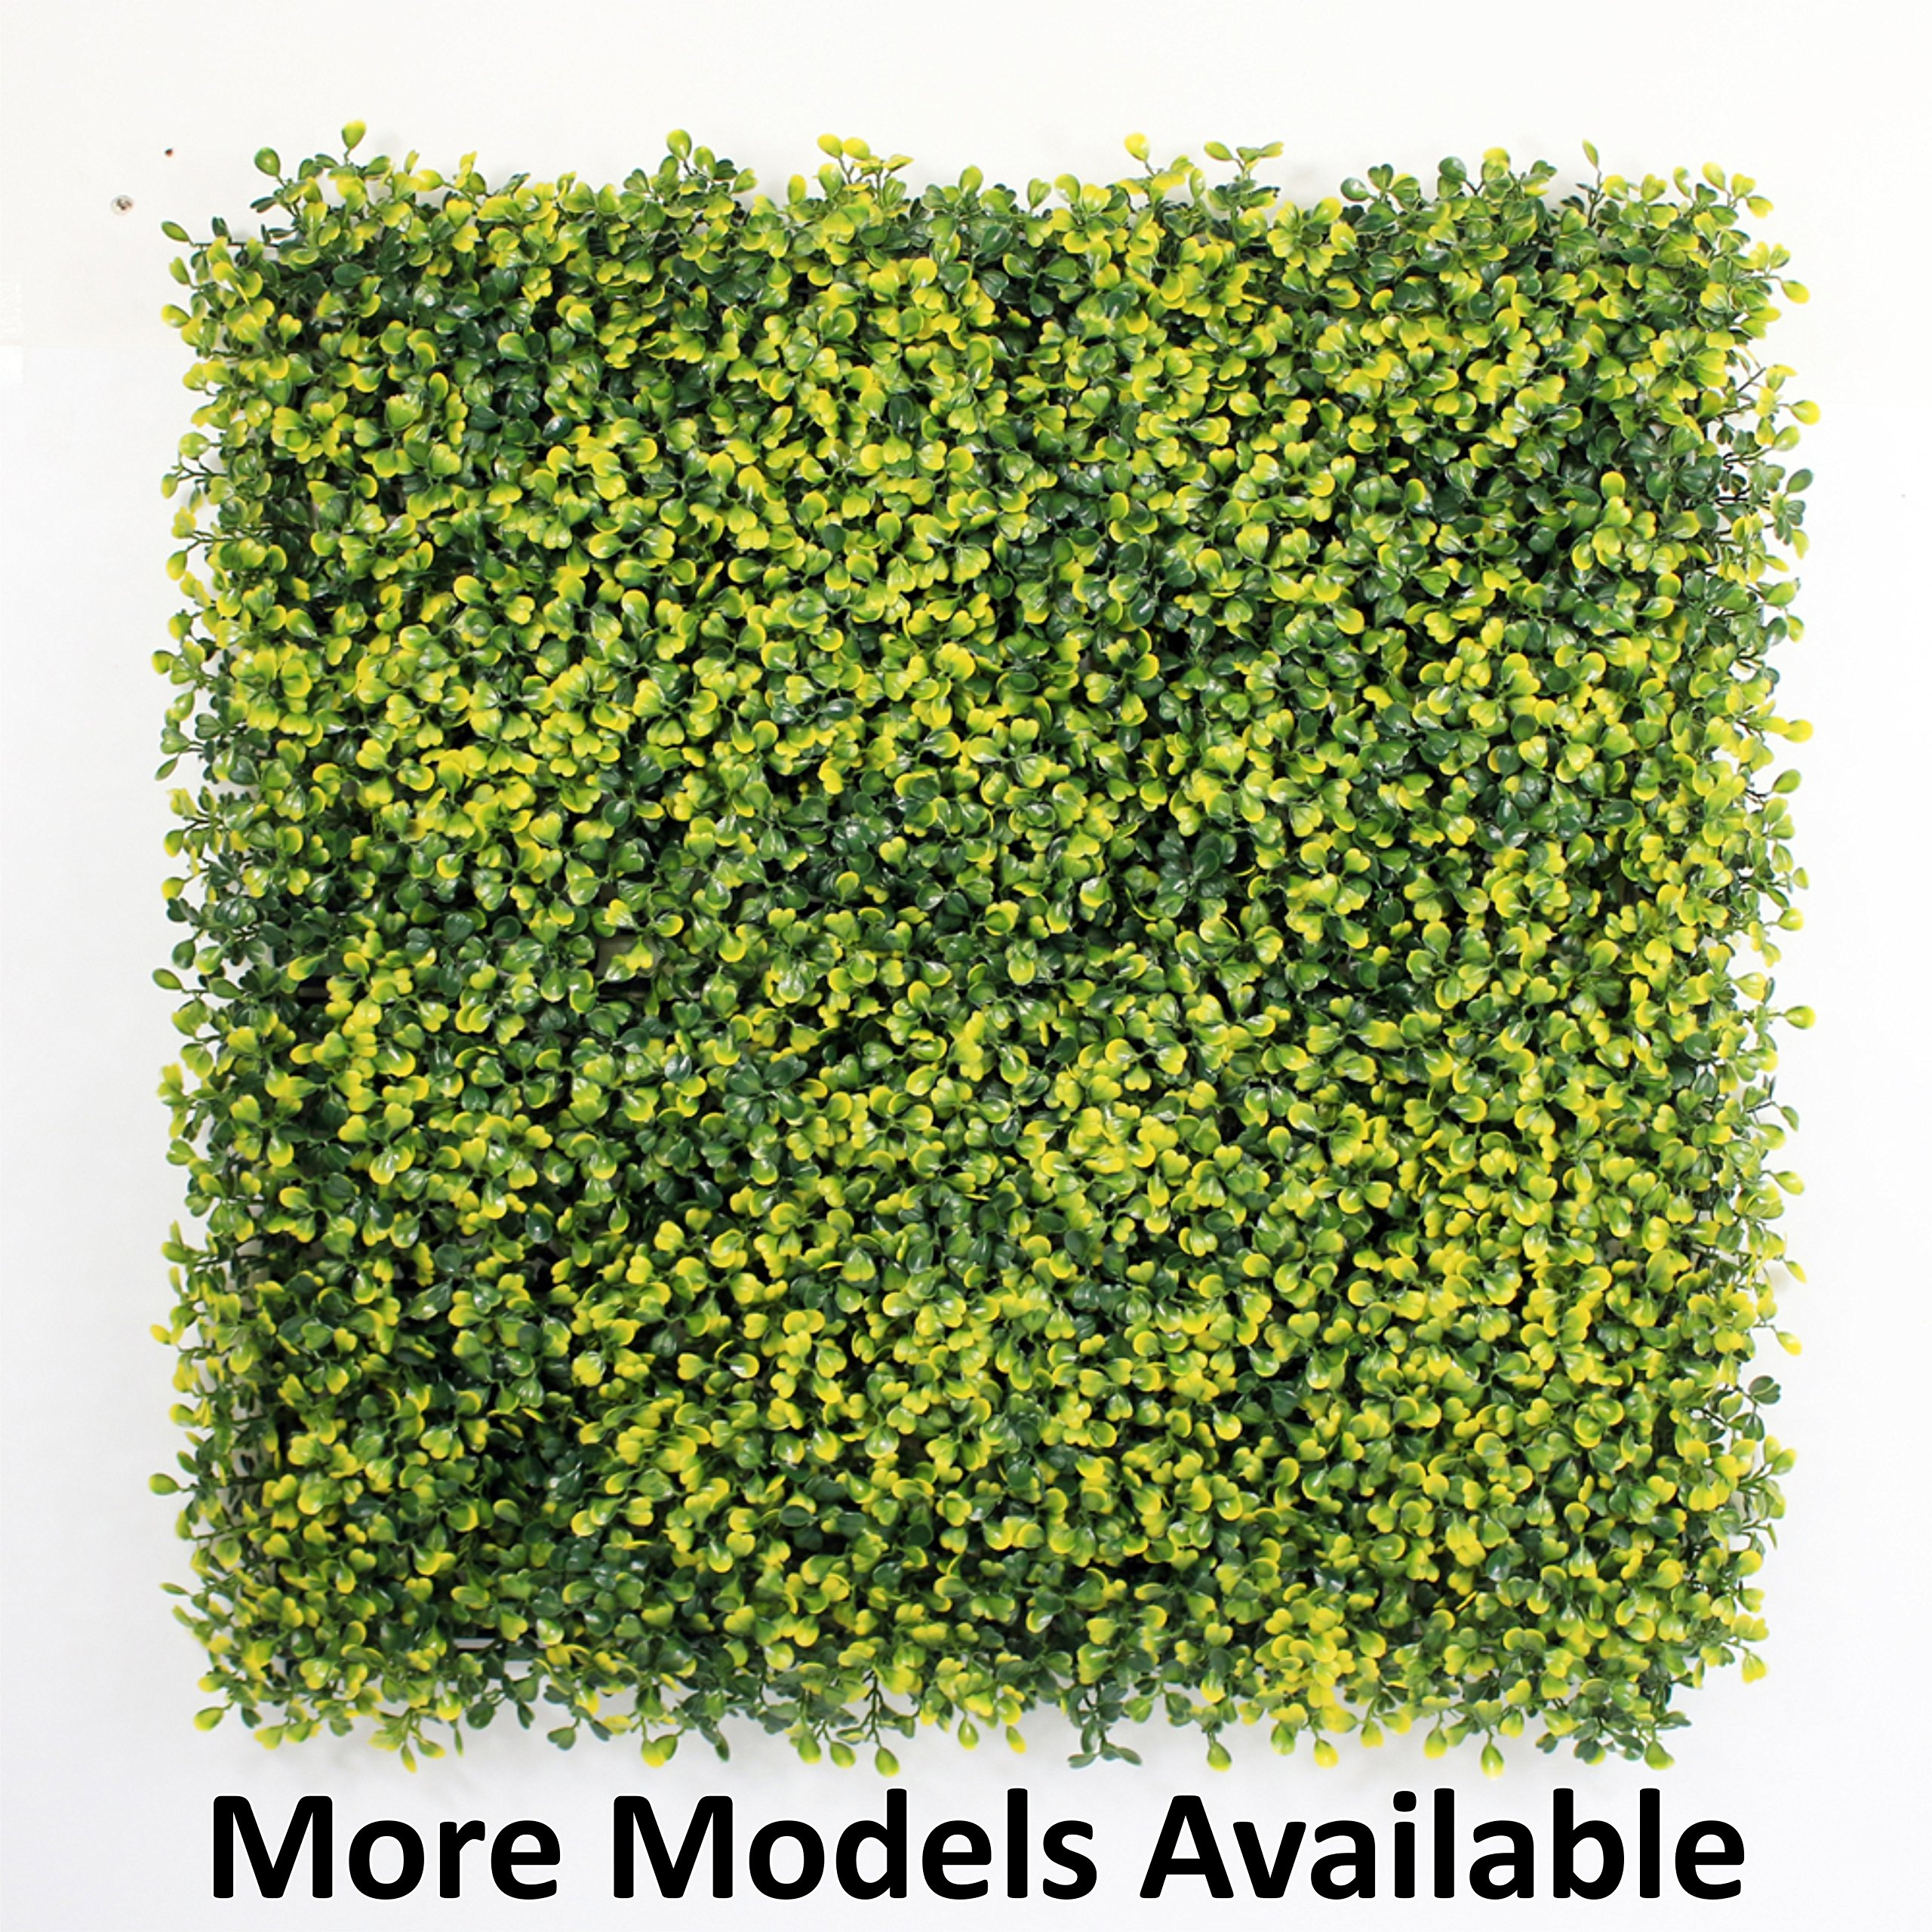 GENPAR - Artificial Hedge BOXWOOD, covers 33 SQ feet, adds protection, privacy fences, box consist of 12 packs (20'' x 20'') UV PROTECTION, INSTALL DIY. 15 YEARS life span. (A001-YELLOW)